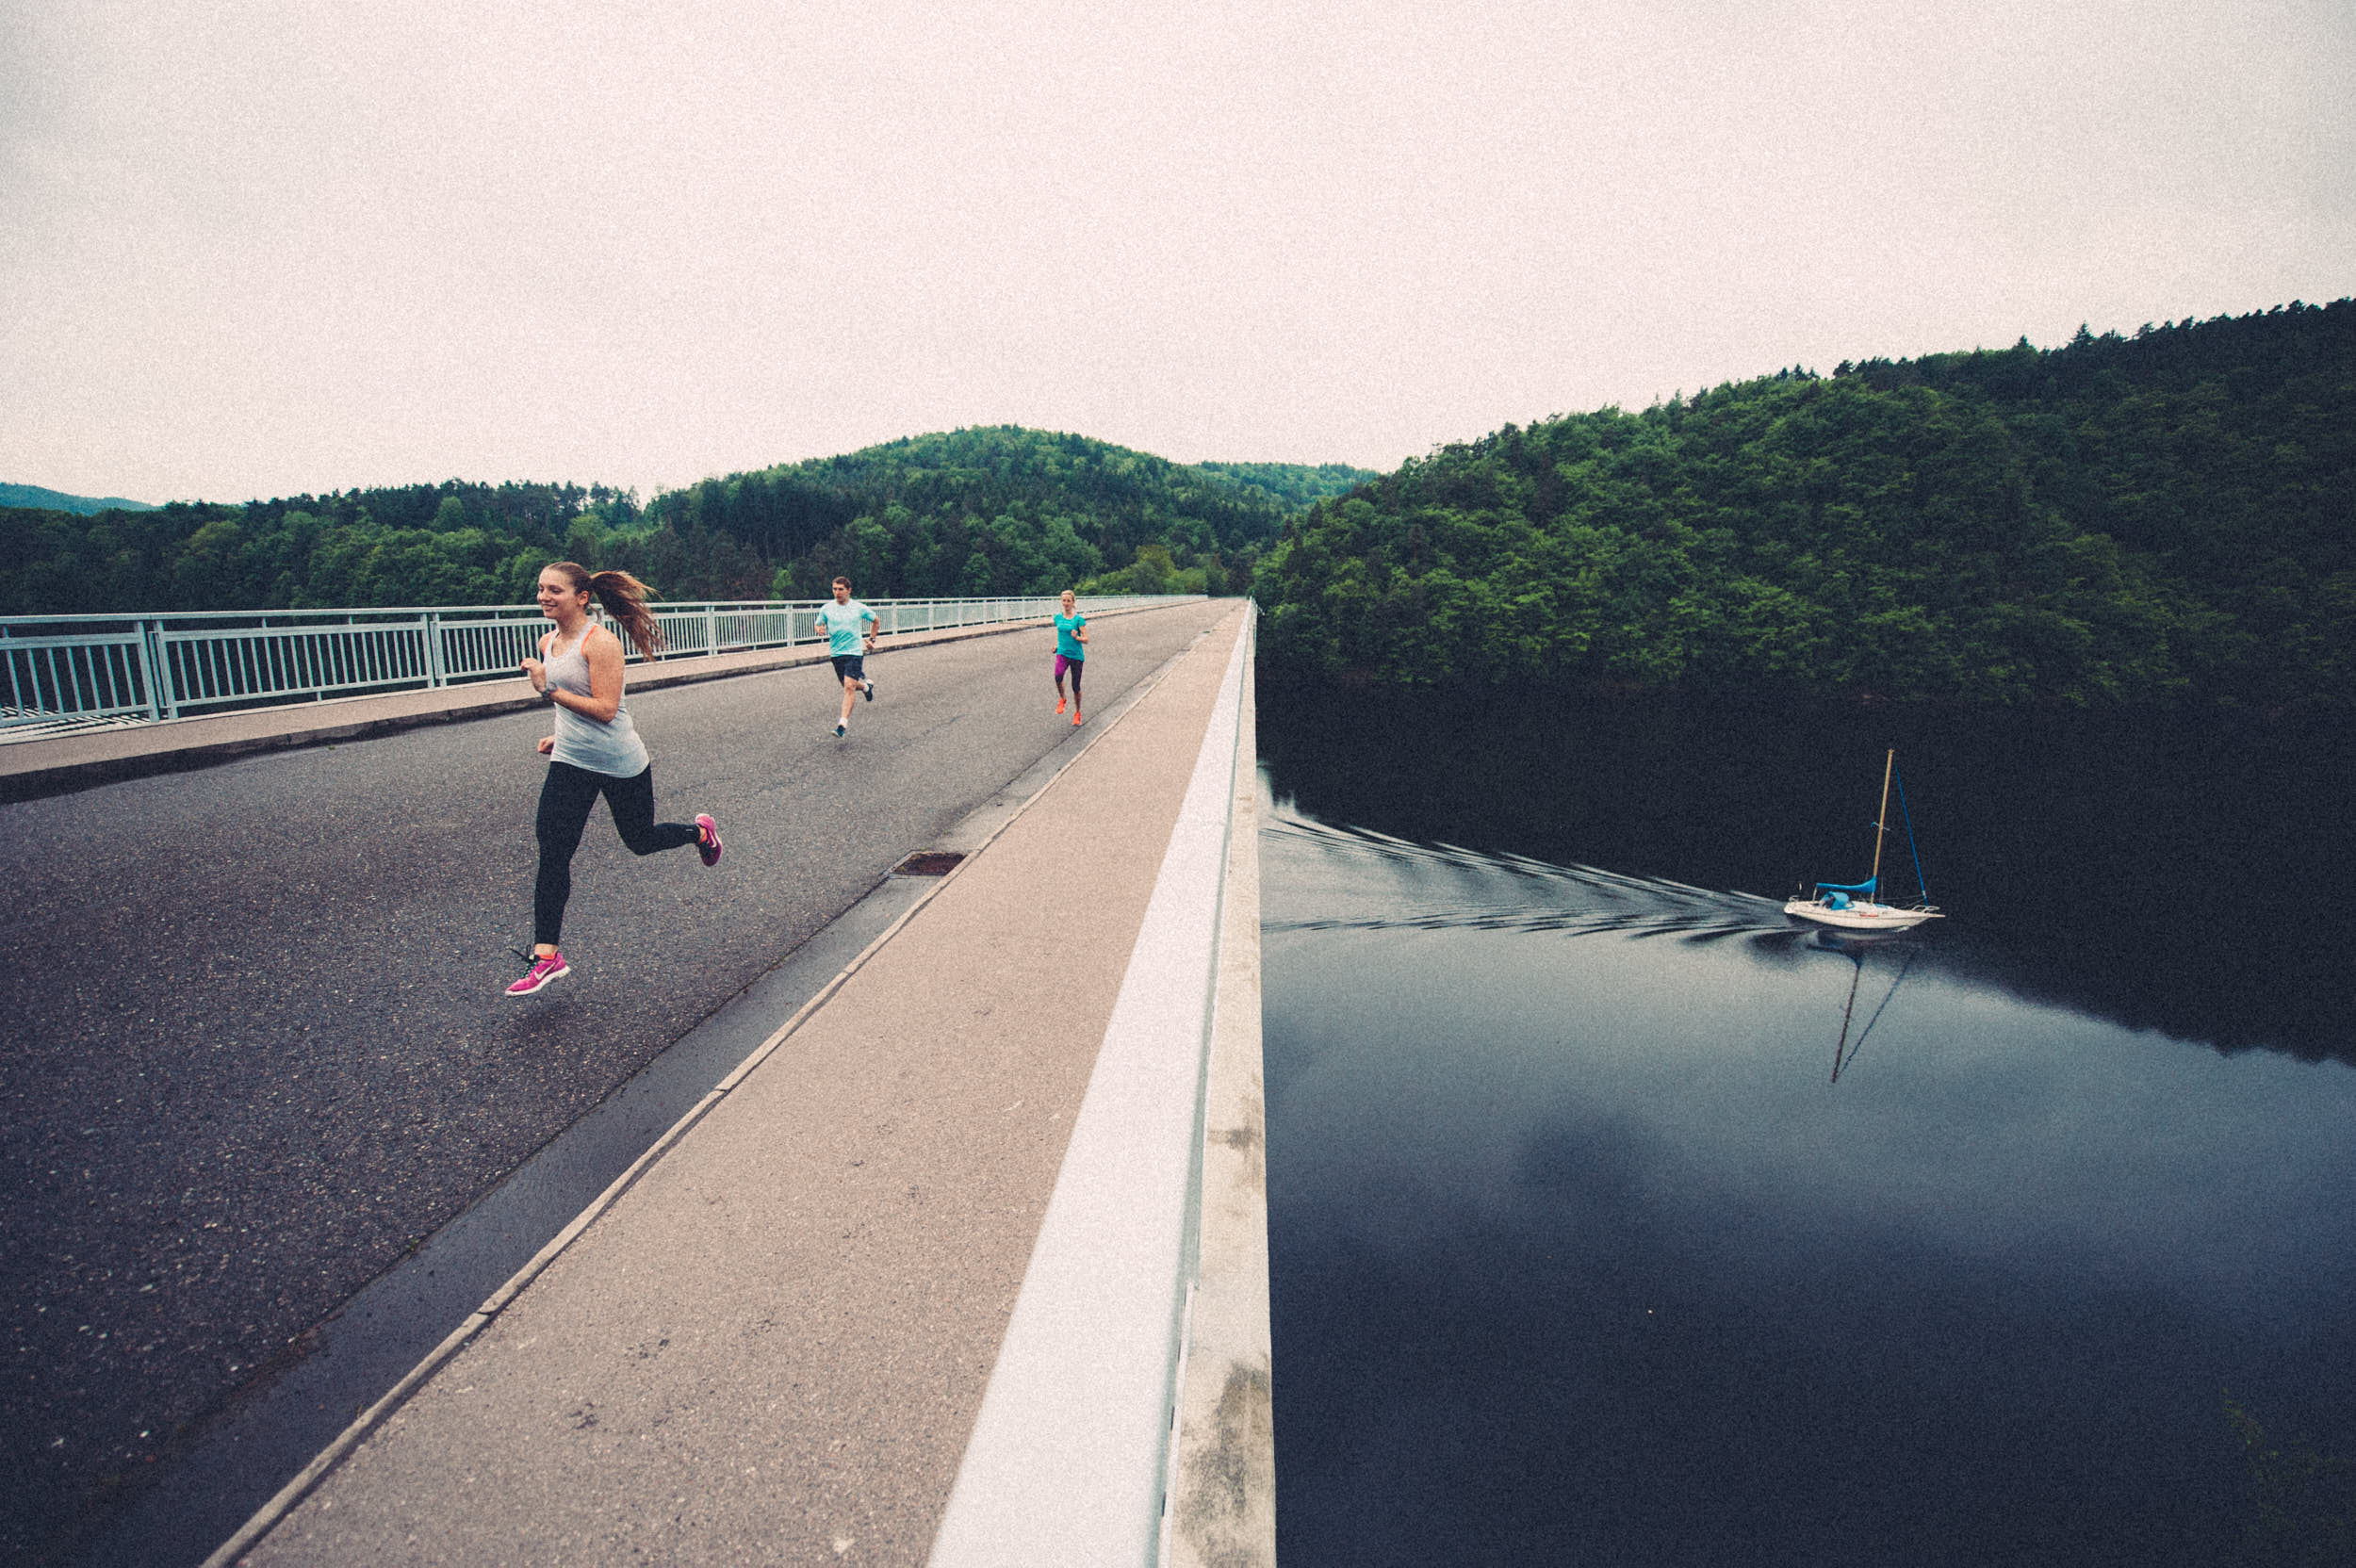 Group of athletes running across a bridge over a dam.